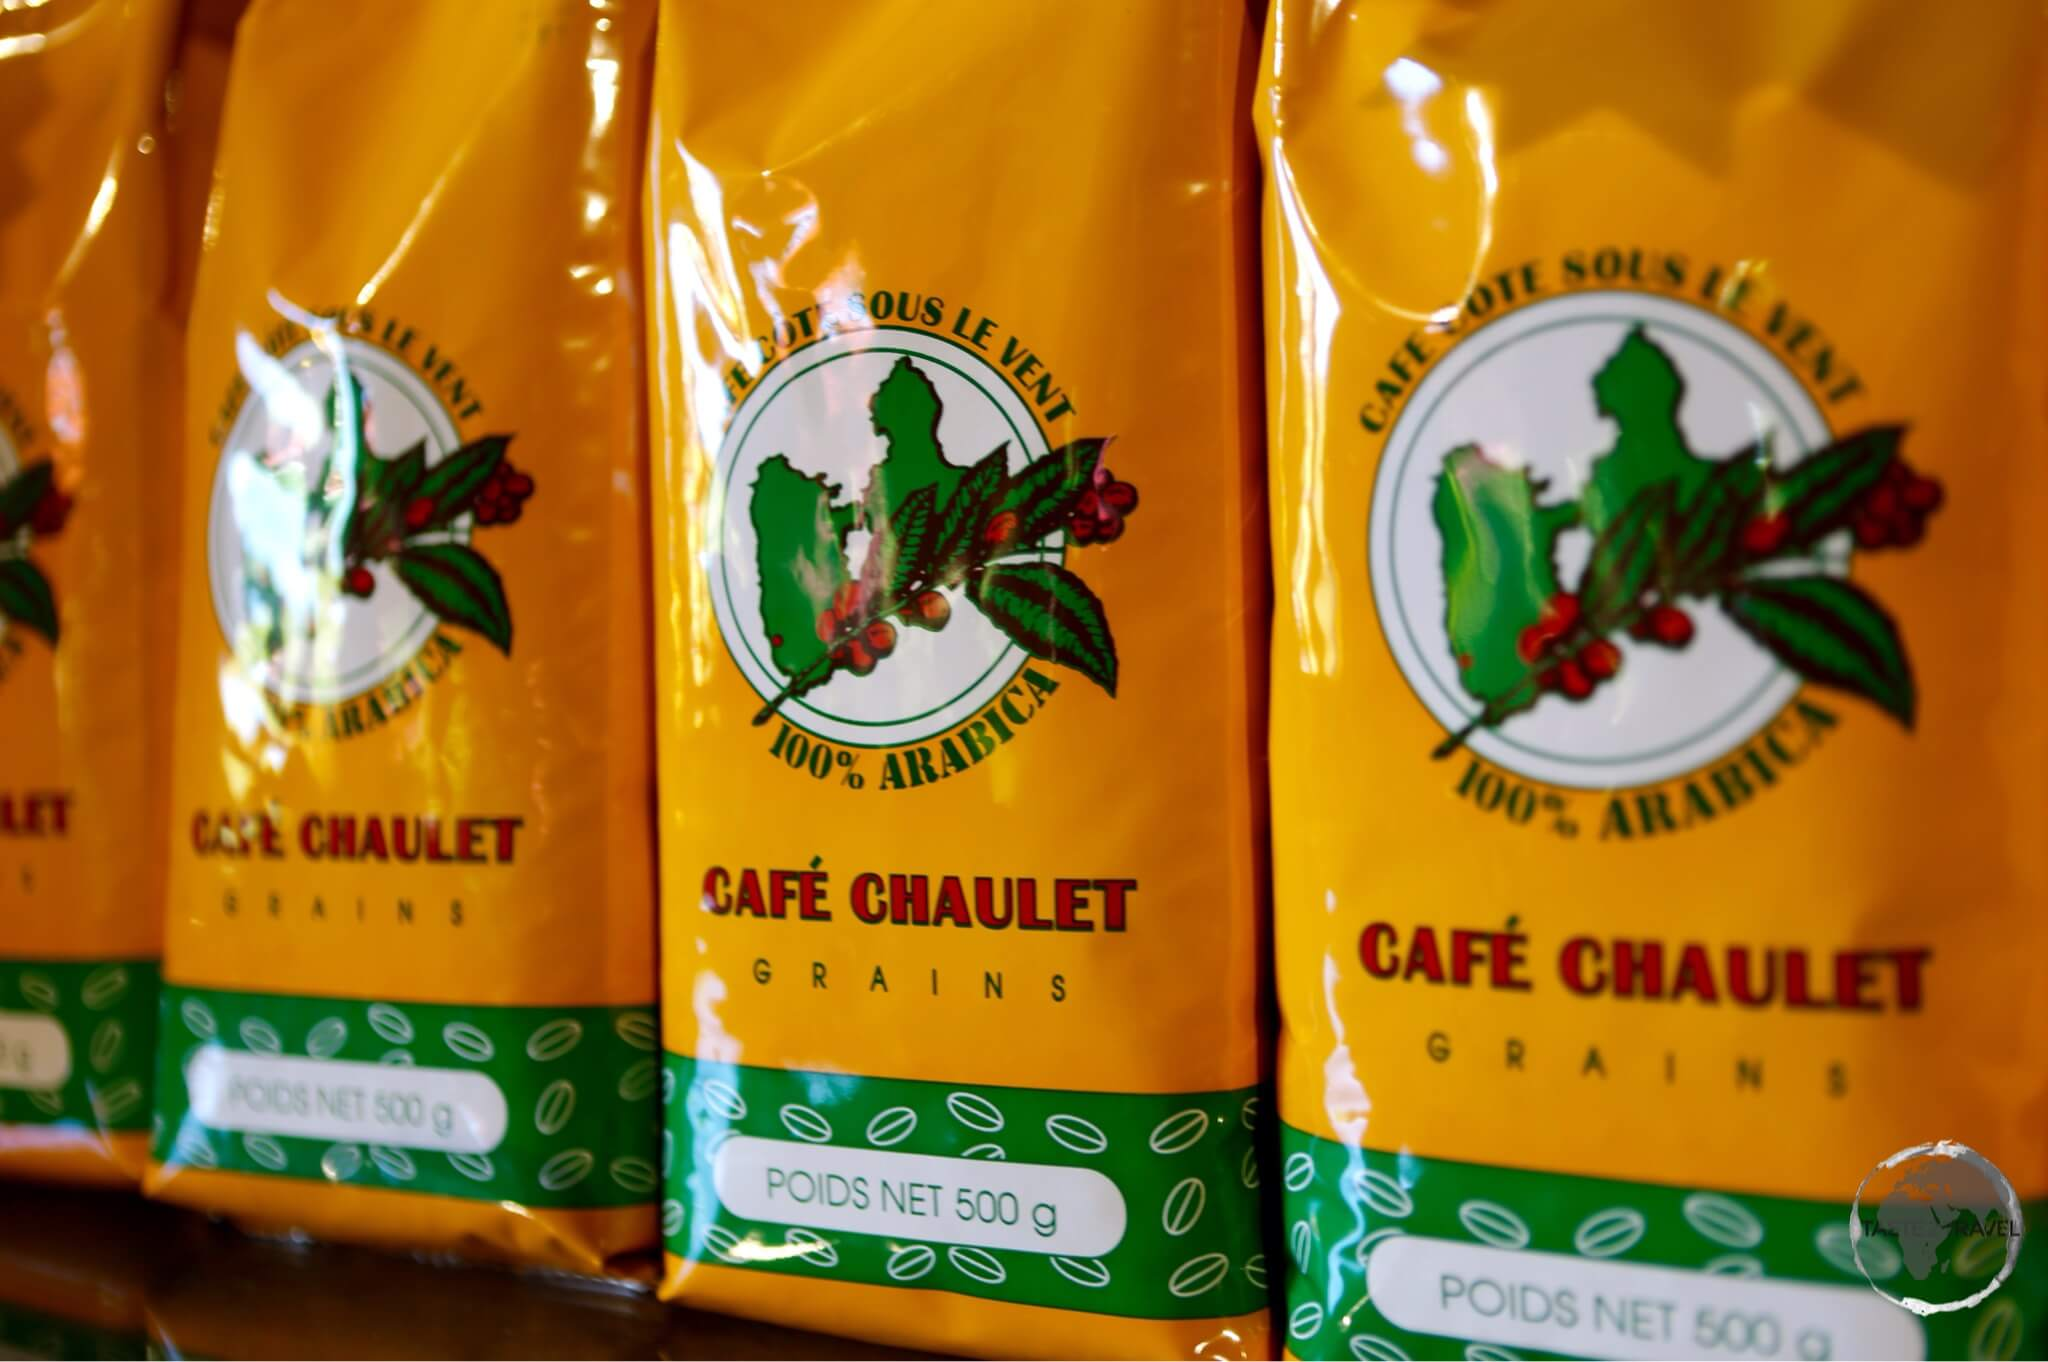 Coffee at Cafe Chaulet.